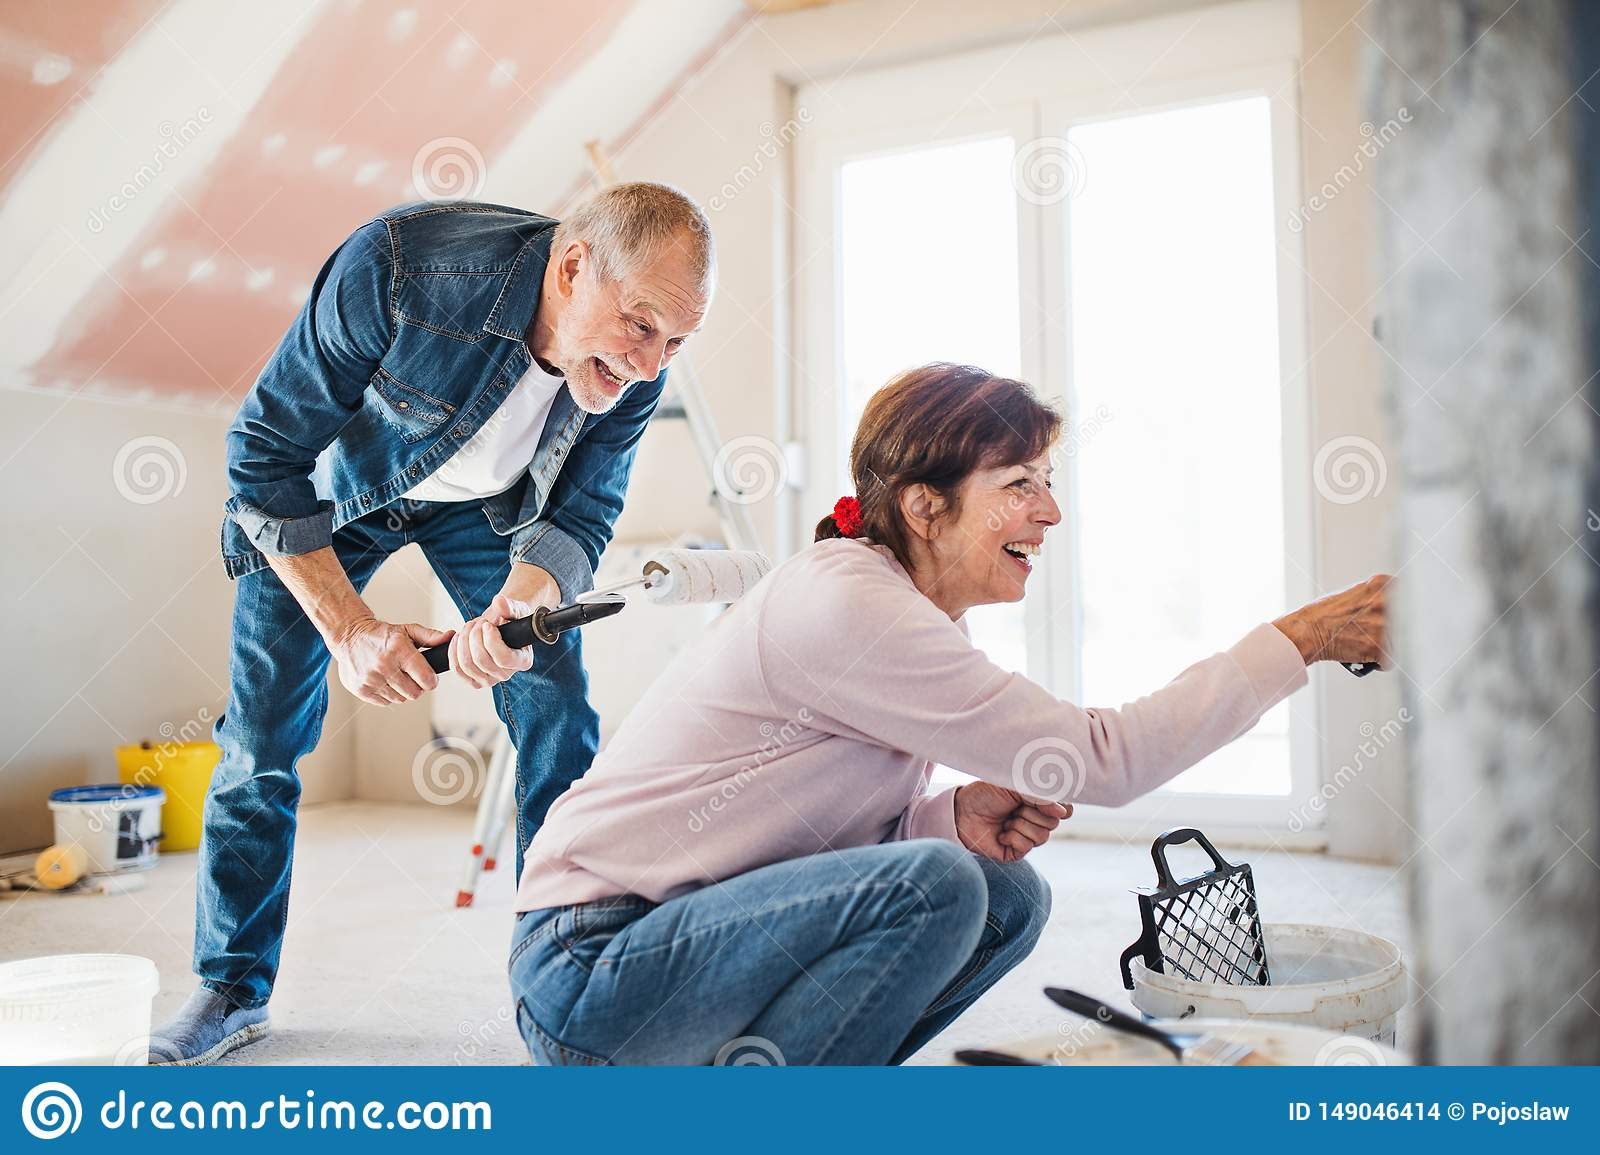 Senior couple painting walls in new home, relocation concept.